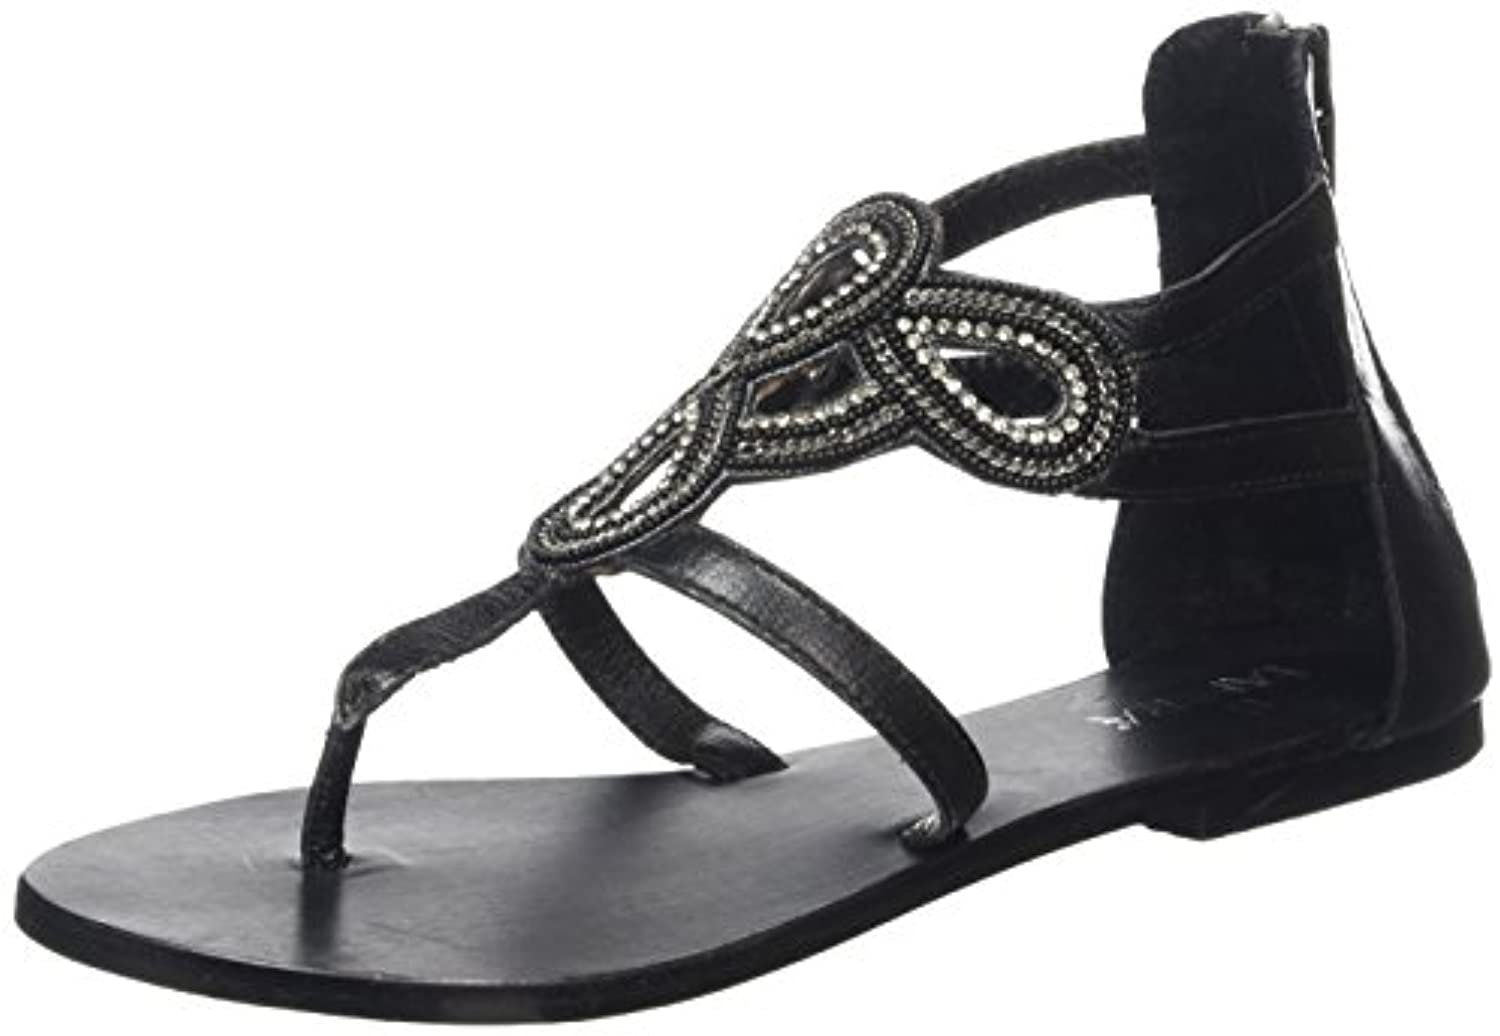 Tantra Strap Sandals with Beads - Sandalias para Mujer